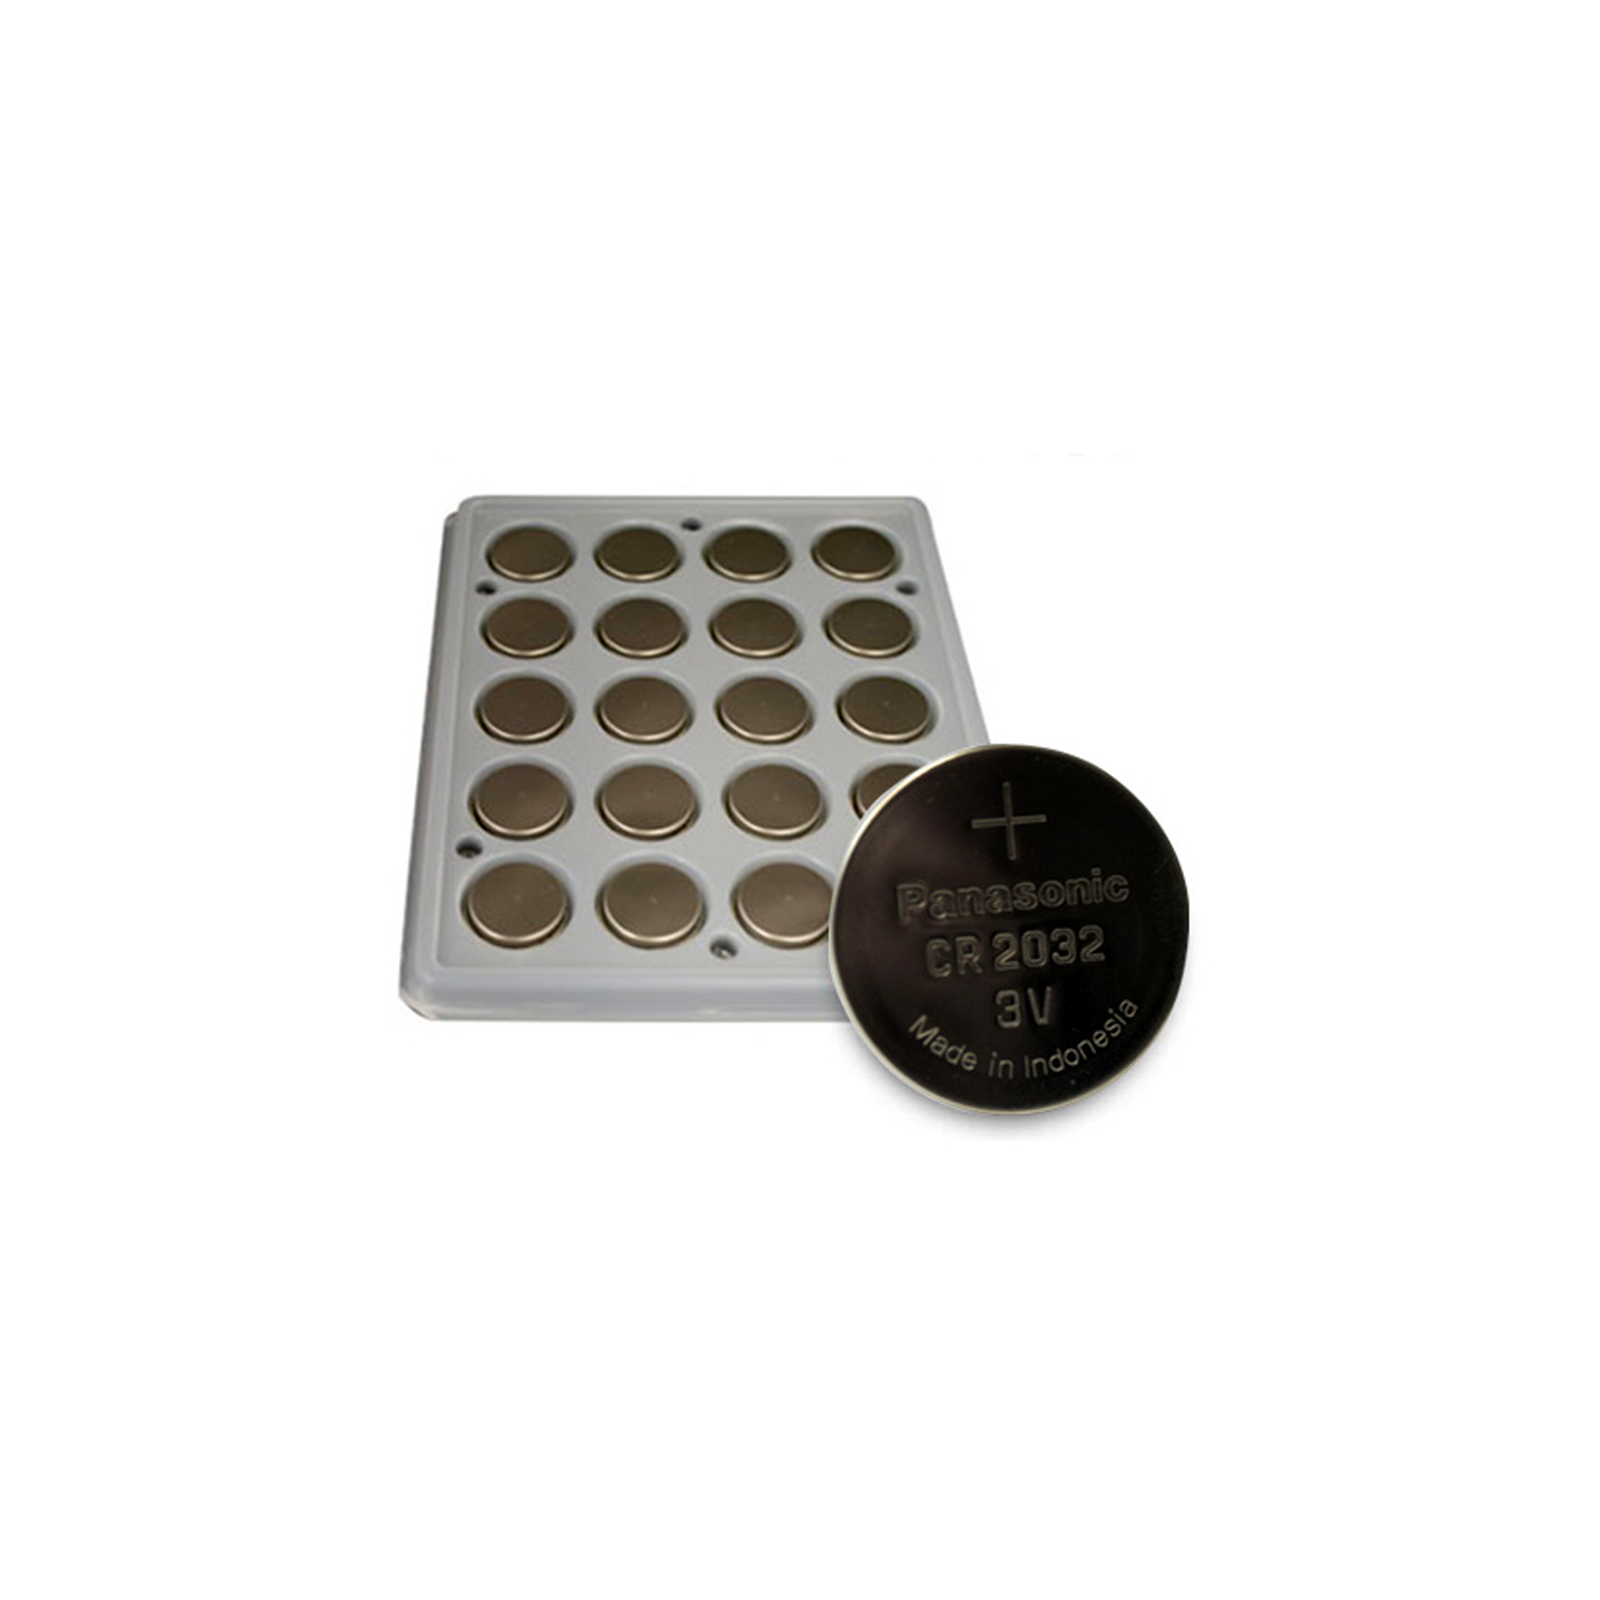 200 pieces Panasonic CR2032 3V Lithium Coin Cell Battery ...